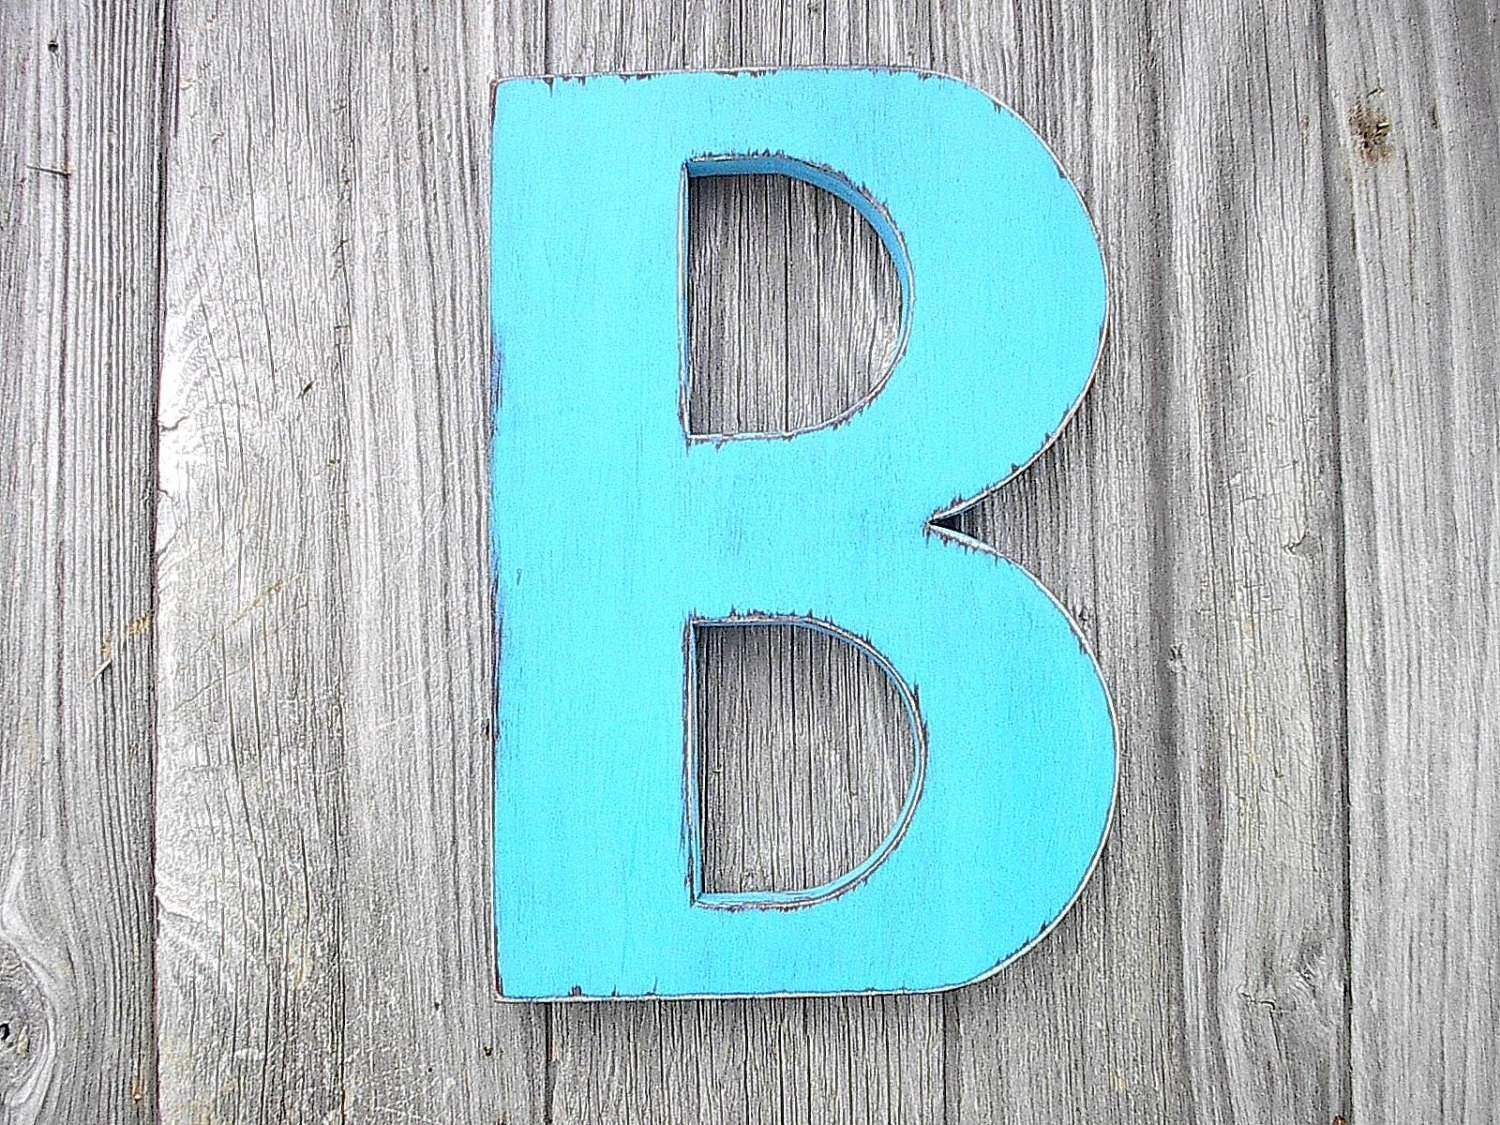 Wooden Wall Decor Shabby Chic Big Letter B Turquoise 12